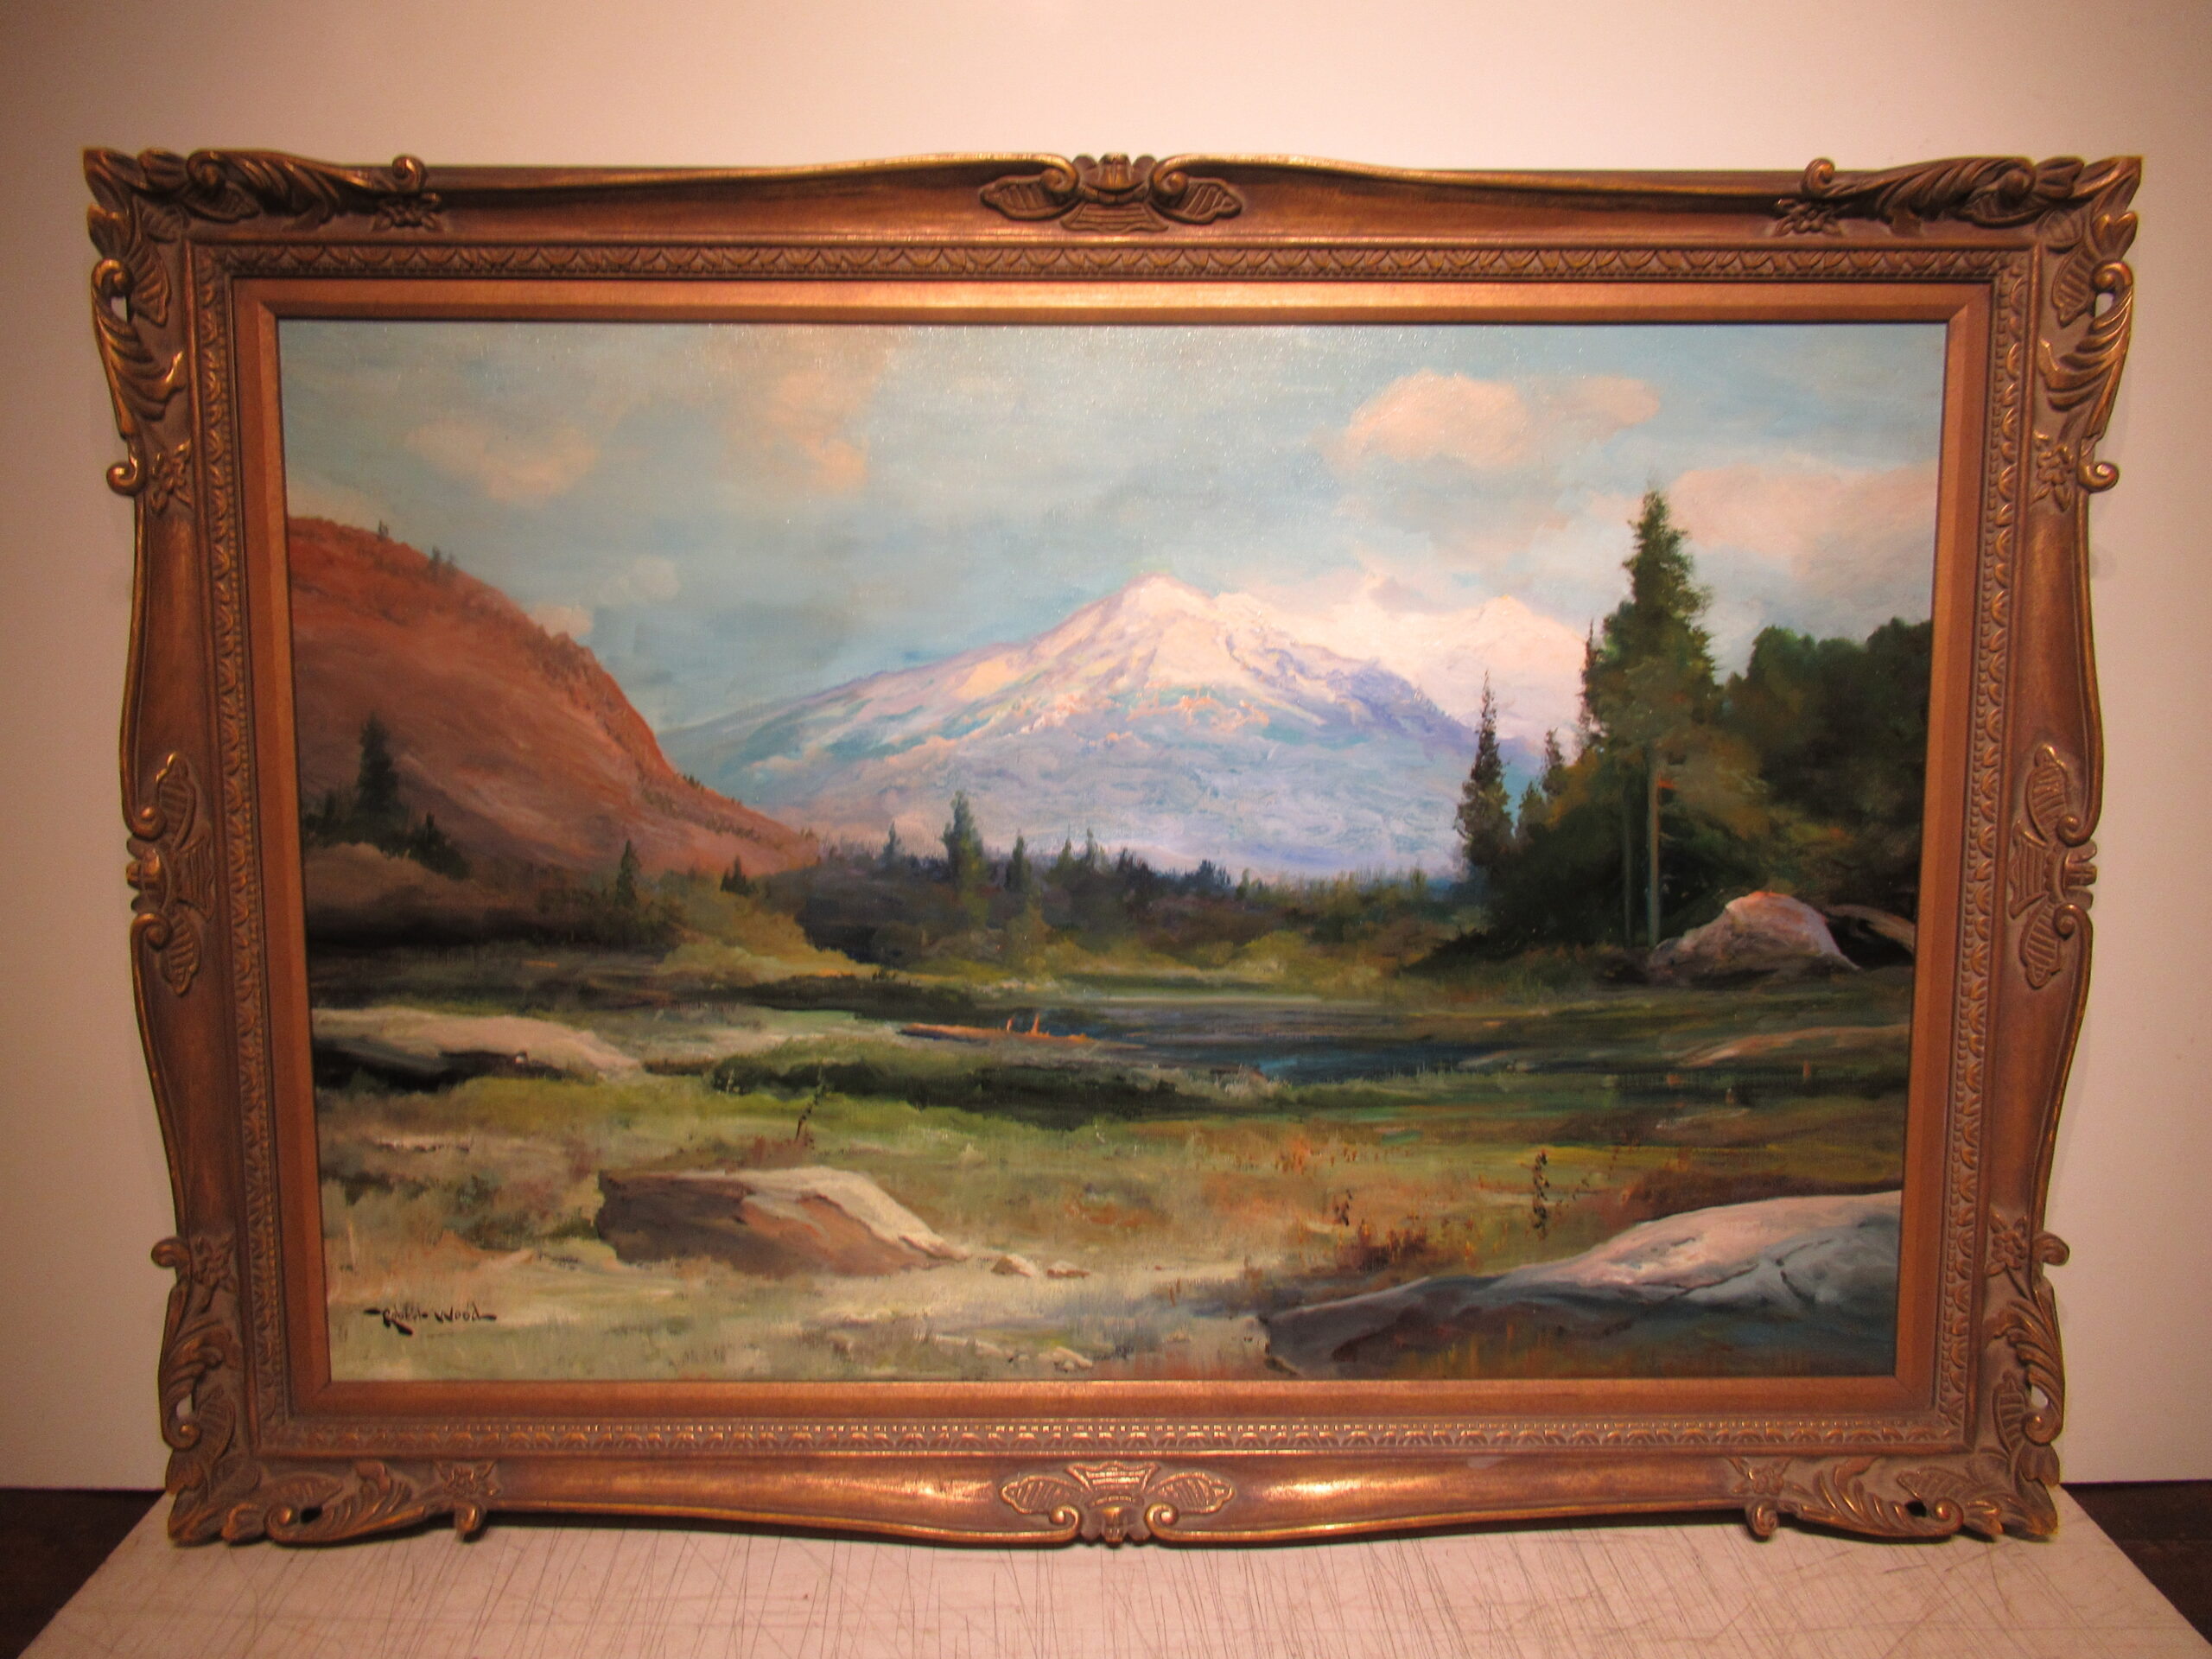 24×36 Robert Wood 1930 High Sierra Oil Painting